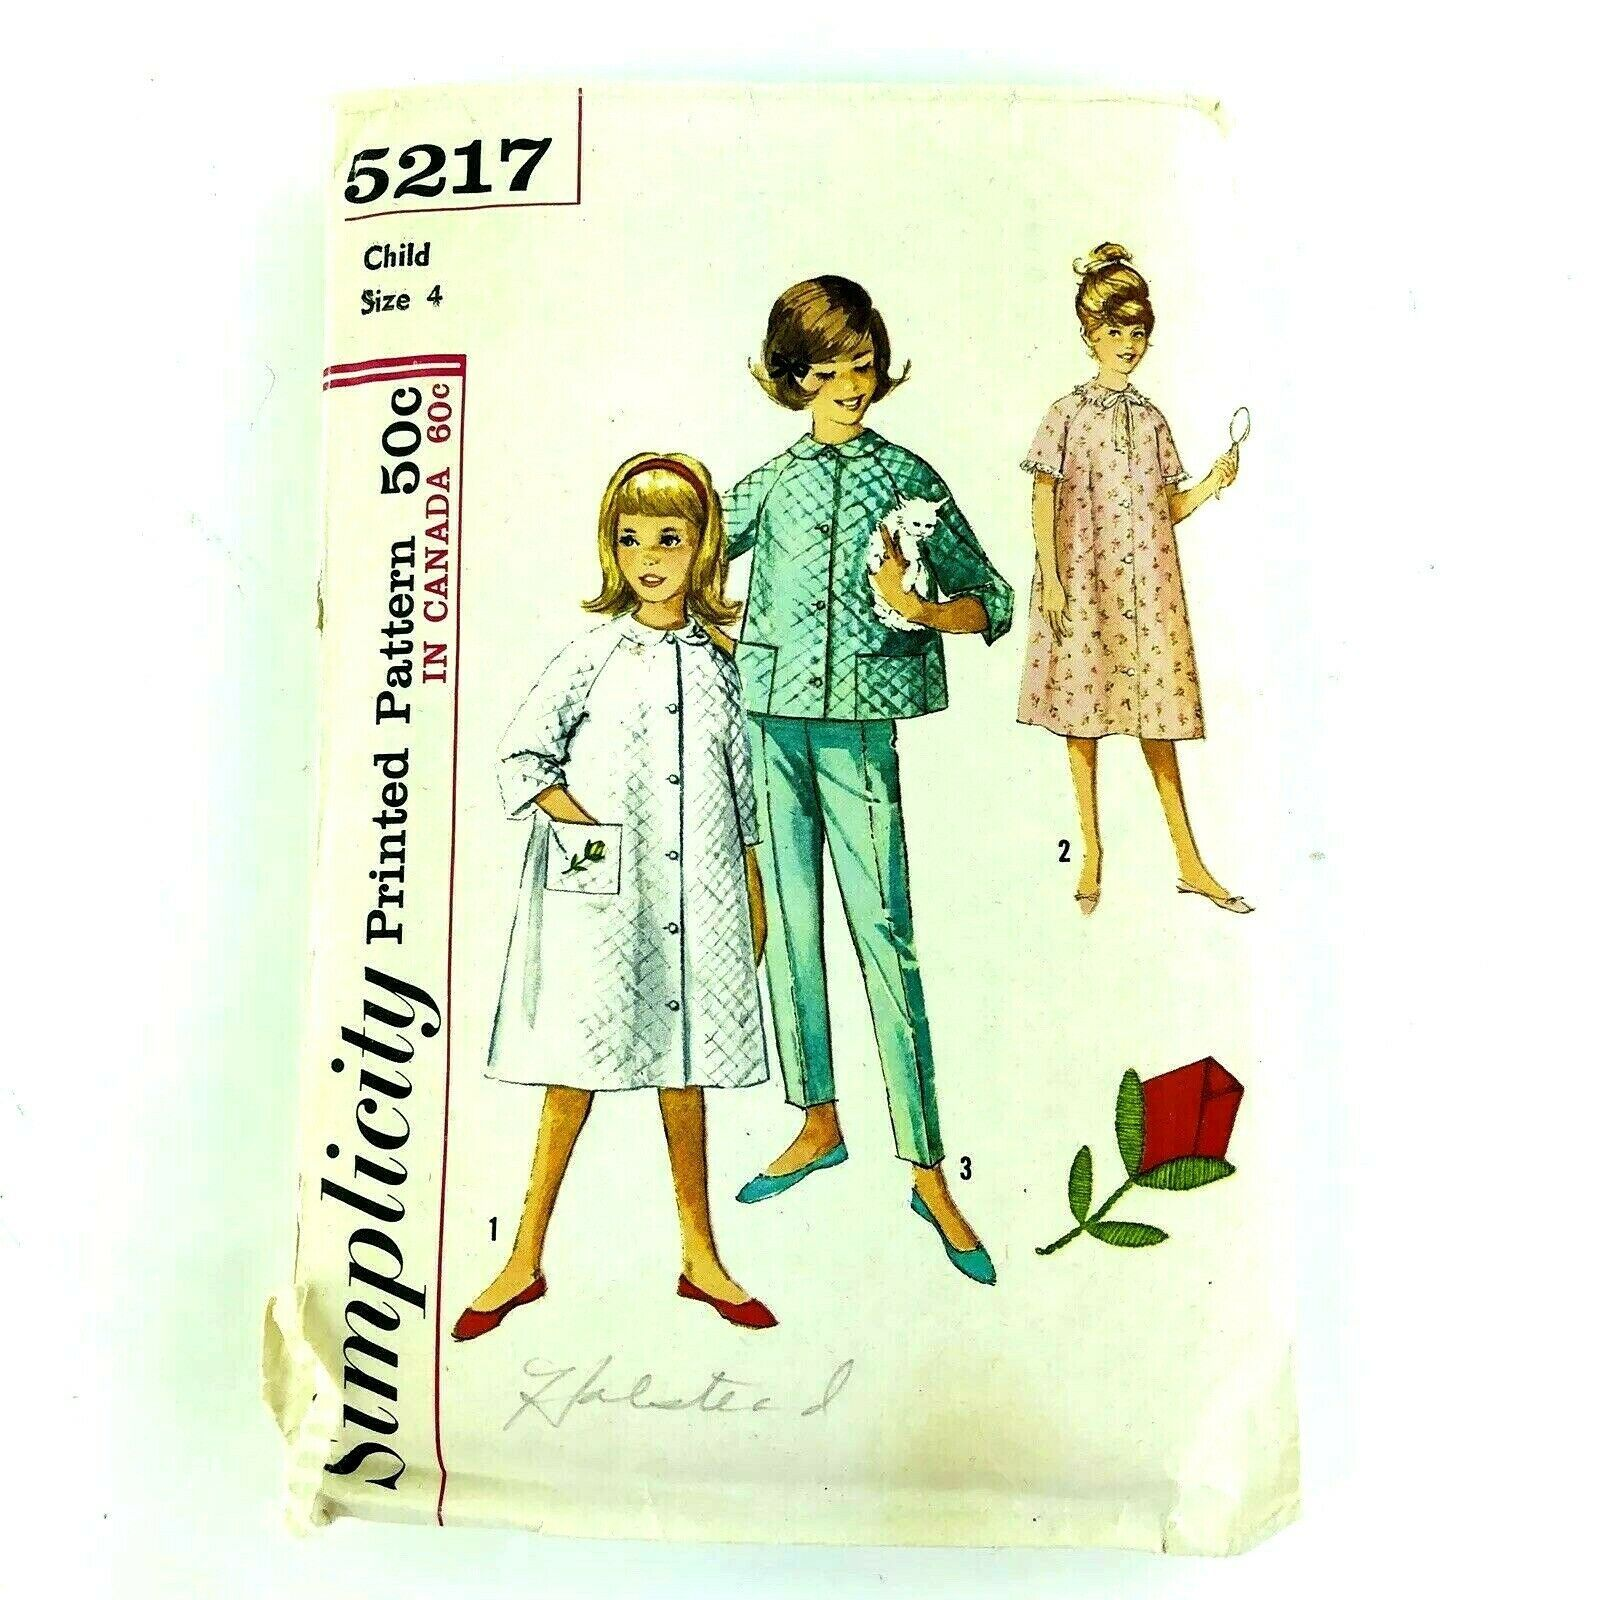 Primary image for Vintage Sewing Pattern 1960 Childrens Pajama Robe Top Pants Girls Size 4 PA293